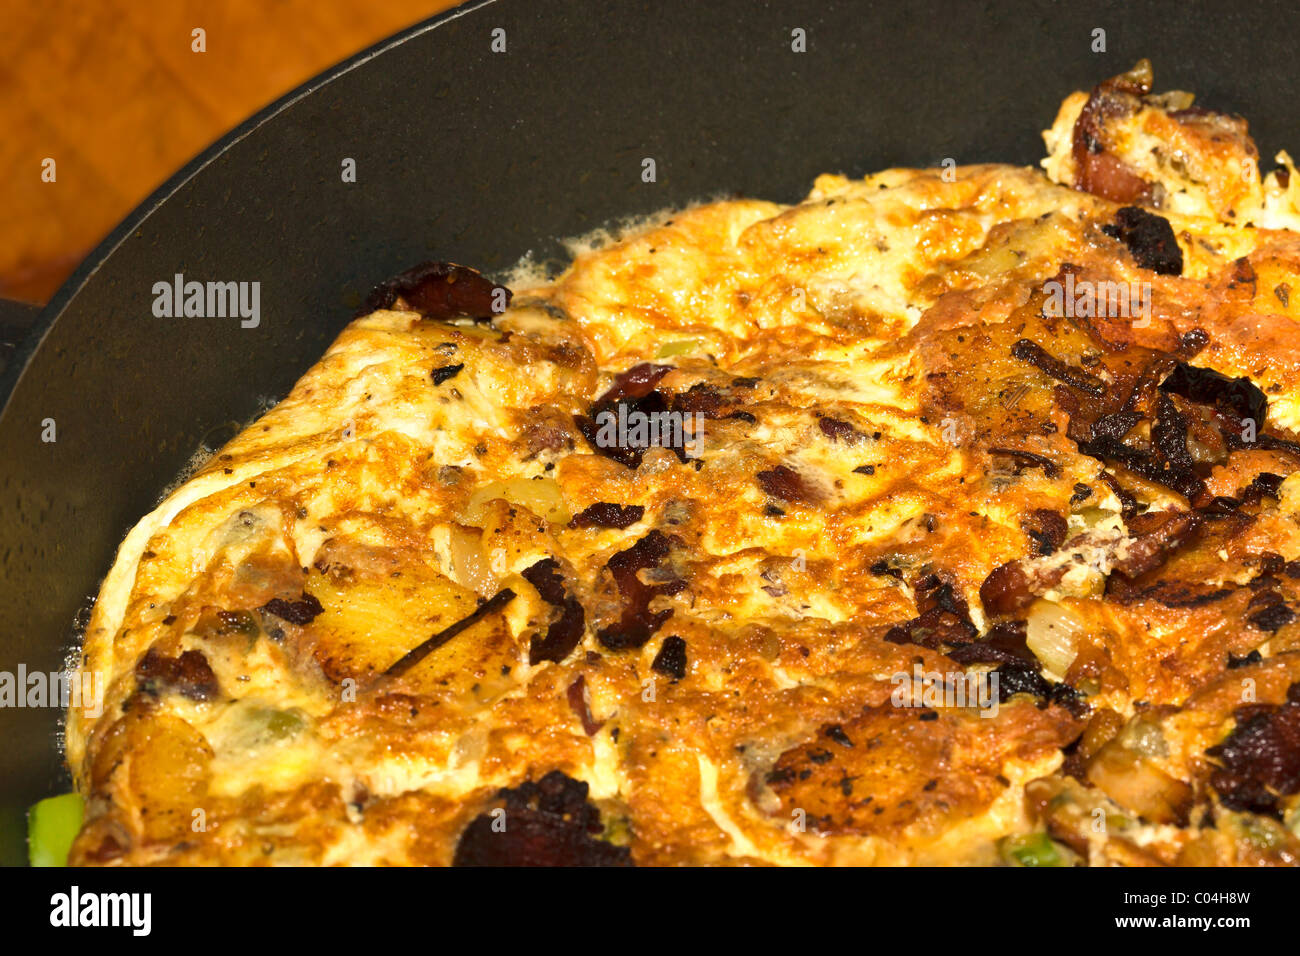 Fried asparagus, potato, and bacon frittata omelet. Charles Lupica - Stock Image